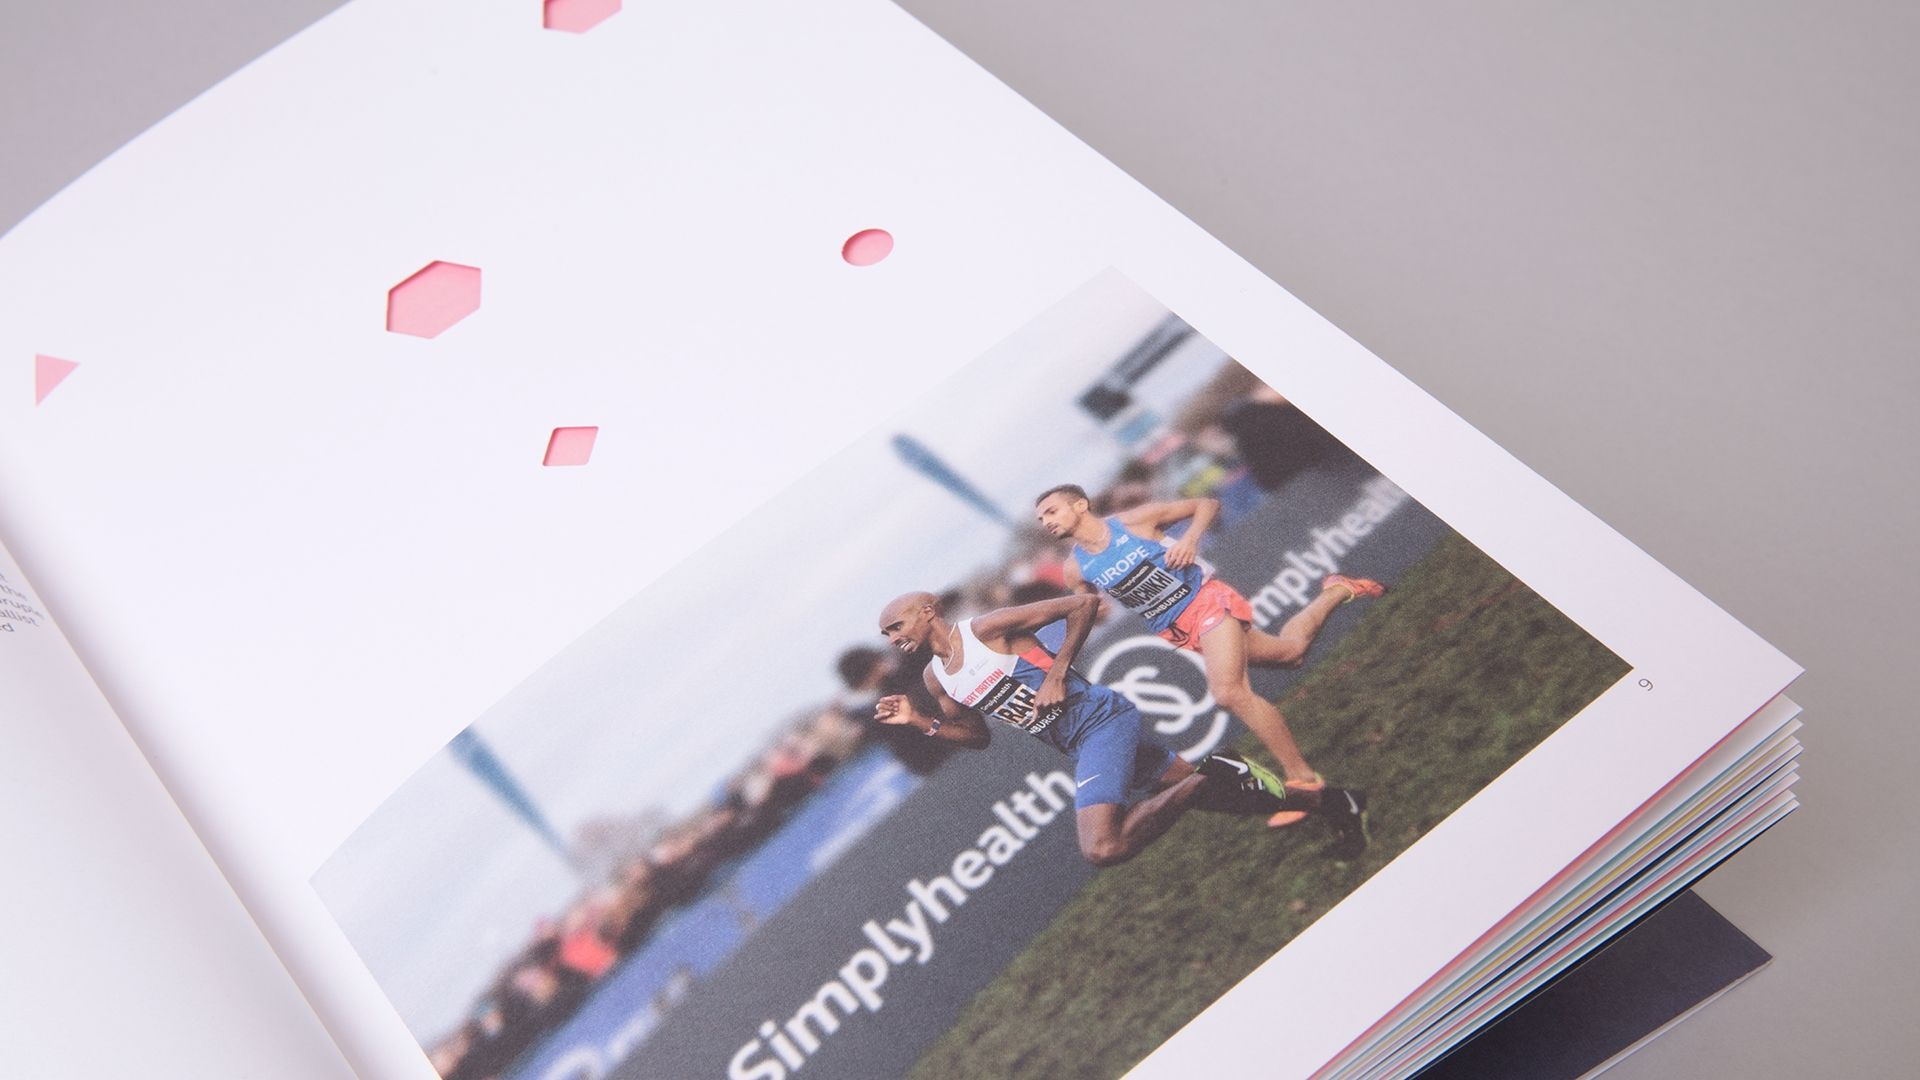 Simplyhealth Professionals Brochure Design showing Die-Cut Details and Art Directed Photography of Mo Farah and signage design